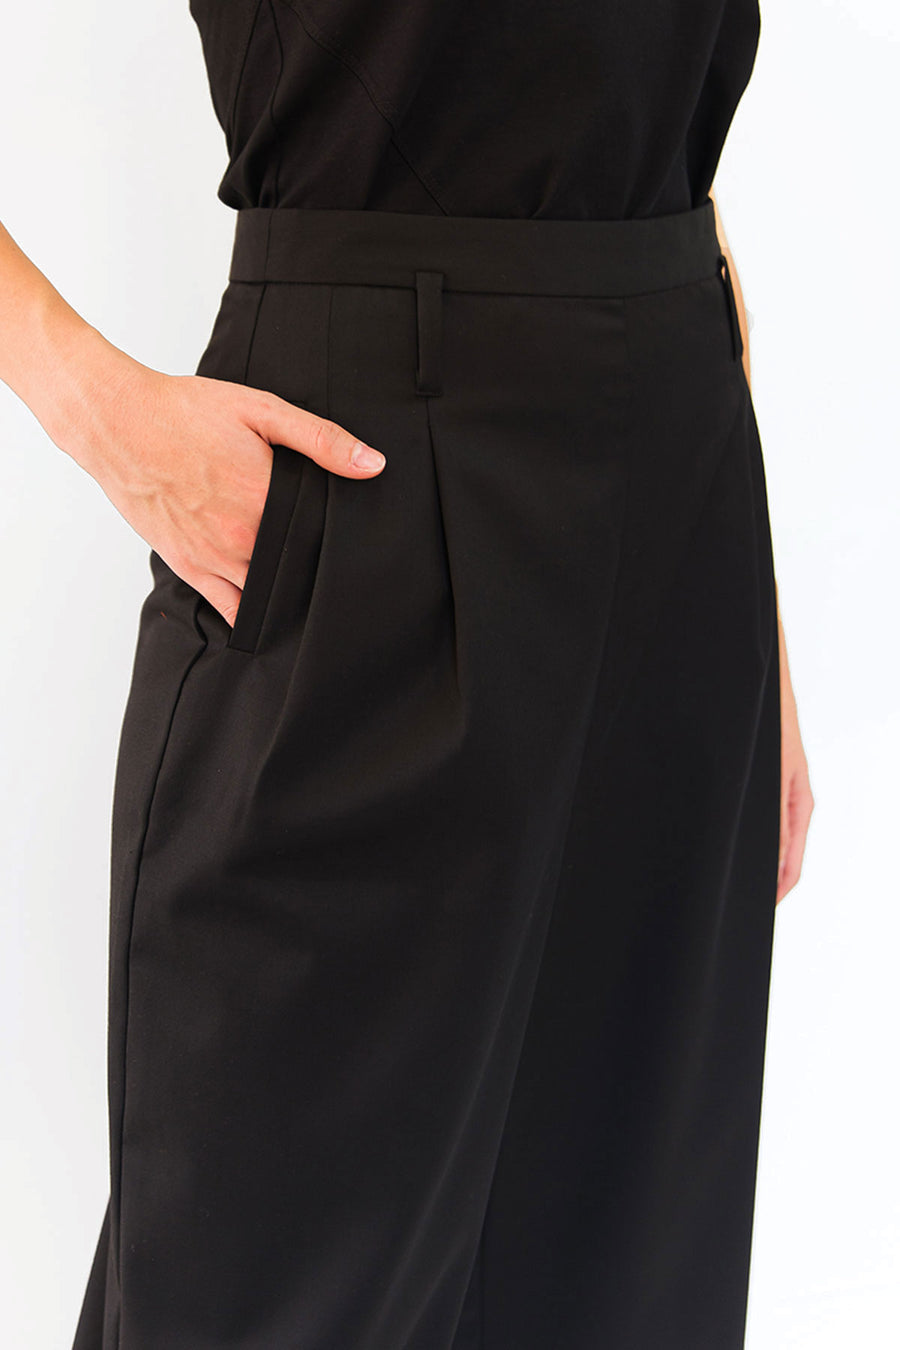 Tailored black pants with pleats